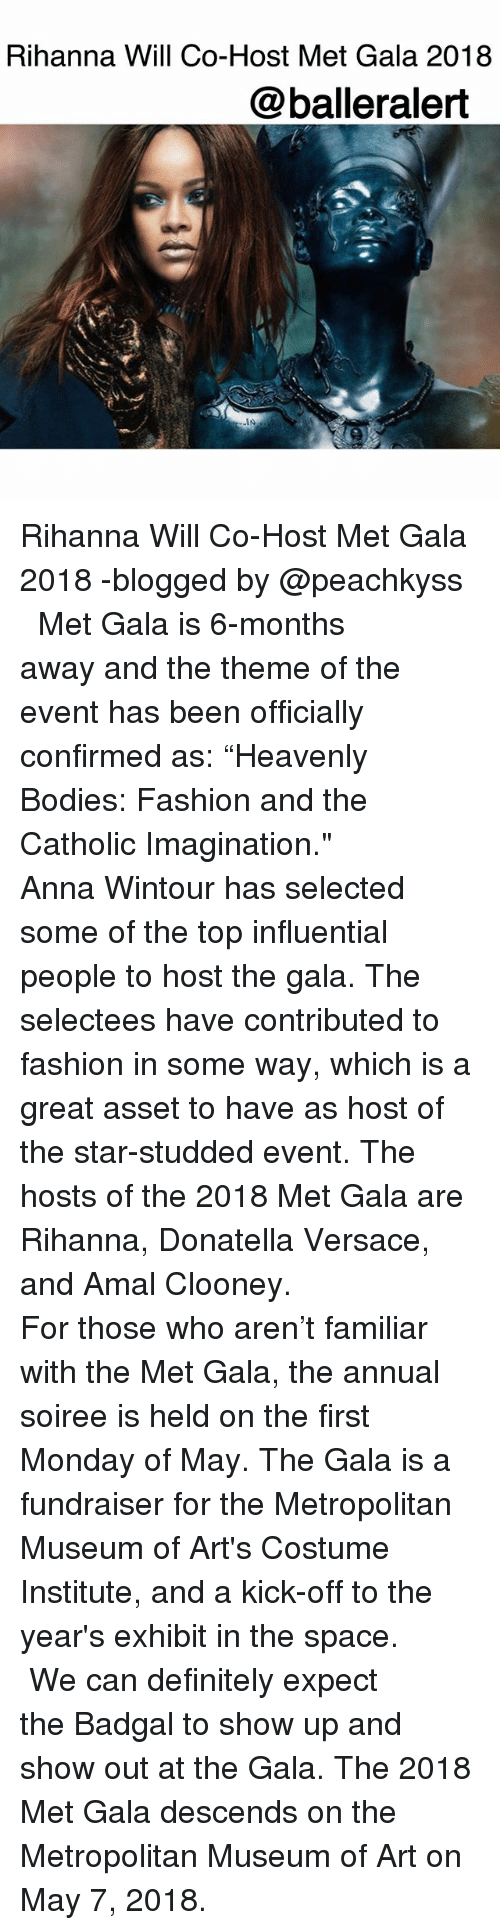 """Versace: Rihanna Will Co-Host Met Gala 2018  @balleralert Rihanna Will Co-Host Met Gala 2018 -blogged by @peachkyss ⠀⠀⠀⠀⠀⠀⠀ ⠀⠀⠀⠀⠀⠀⠀ Met Gala is 6-months away and the theme of the event has been officially confirmed as: """"Heavenly Bodies: Fashion and the Catholic Imagination."""" ⠀⠀⠀⠀⠀⠀⠀ ⠀⠀⠀⠀⠀⠀⠀ Anna Wintour has selected some of the top influential people to host the gala. The selectees have contributed to fashion in some way, which is a great asset to have as host of the star-studded event. The hosts of the 2018 Met Gala are Rihanna, Donatella Versace, and Amal Clooney. ⠀⠀⠀⠀⠀⠀⠀ ⠀⠀⠀⠀⠀⠀⠀ For those who aren't familiar with the Met Gala, the annual soiree is held on the first Monday of May. The Gala is a fundraiser for the Metropolitan Museum of Art's Costume Institute, and a kick-off to the year's exhibit in the space. ⠀⠀⠀⠀⠀⠀⠀ ⠀⠀⠀⠀⠀⠀⠀ We can definitely expect the Badgal to show up and show out at the Gala. The 2018 Met Gala descends on the Metropolitan Museum of Art on May 7, 2018."""